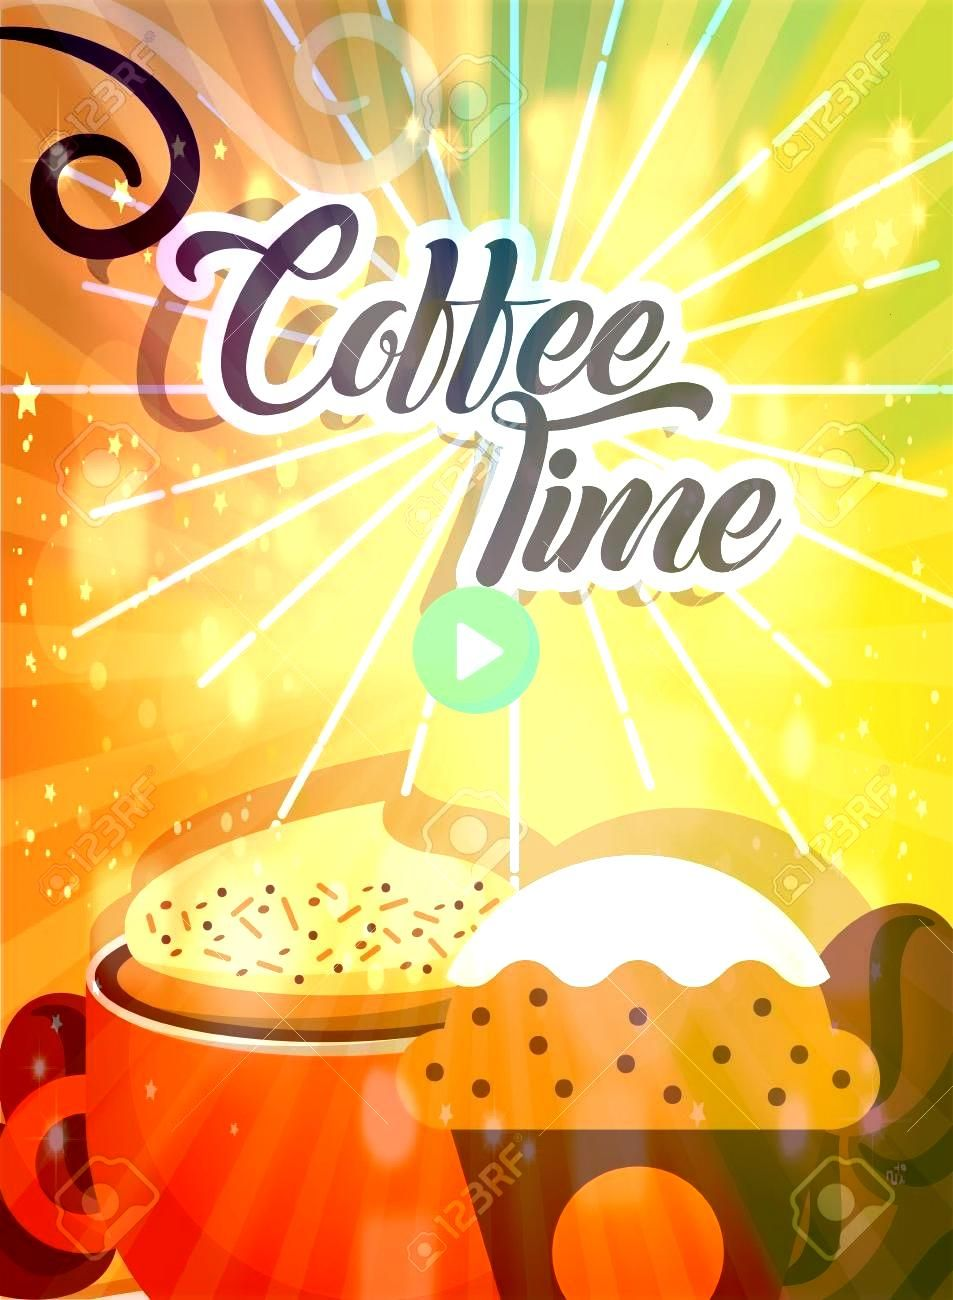 time cup hot foam beverage and cupcake retro style card vector illustration Coffee time cup hot foam beverage and cupcake retro style card vector illustration  All of our...